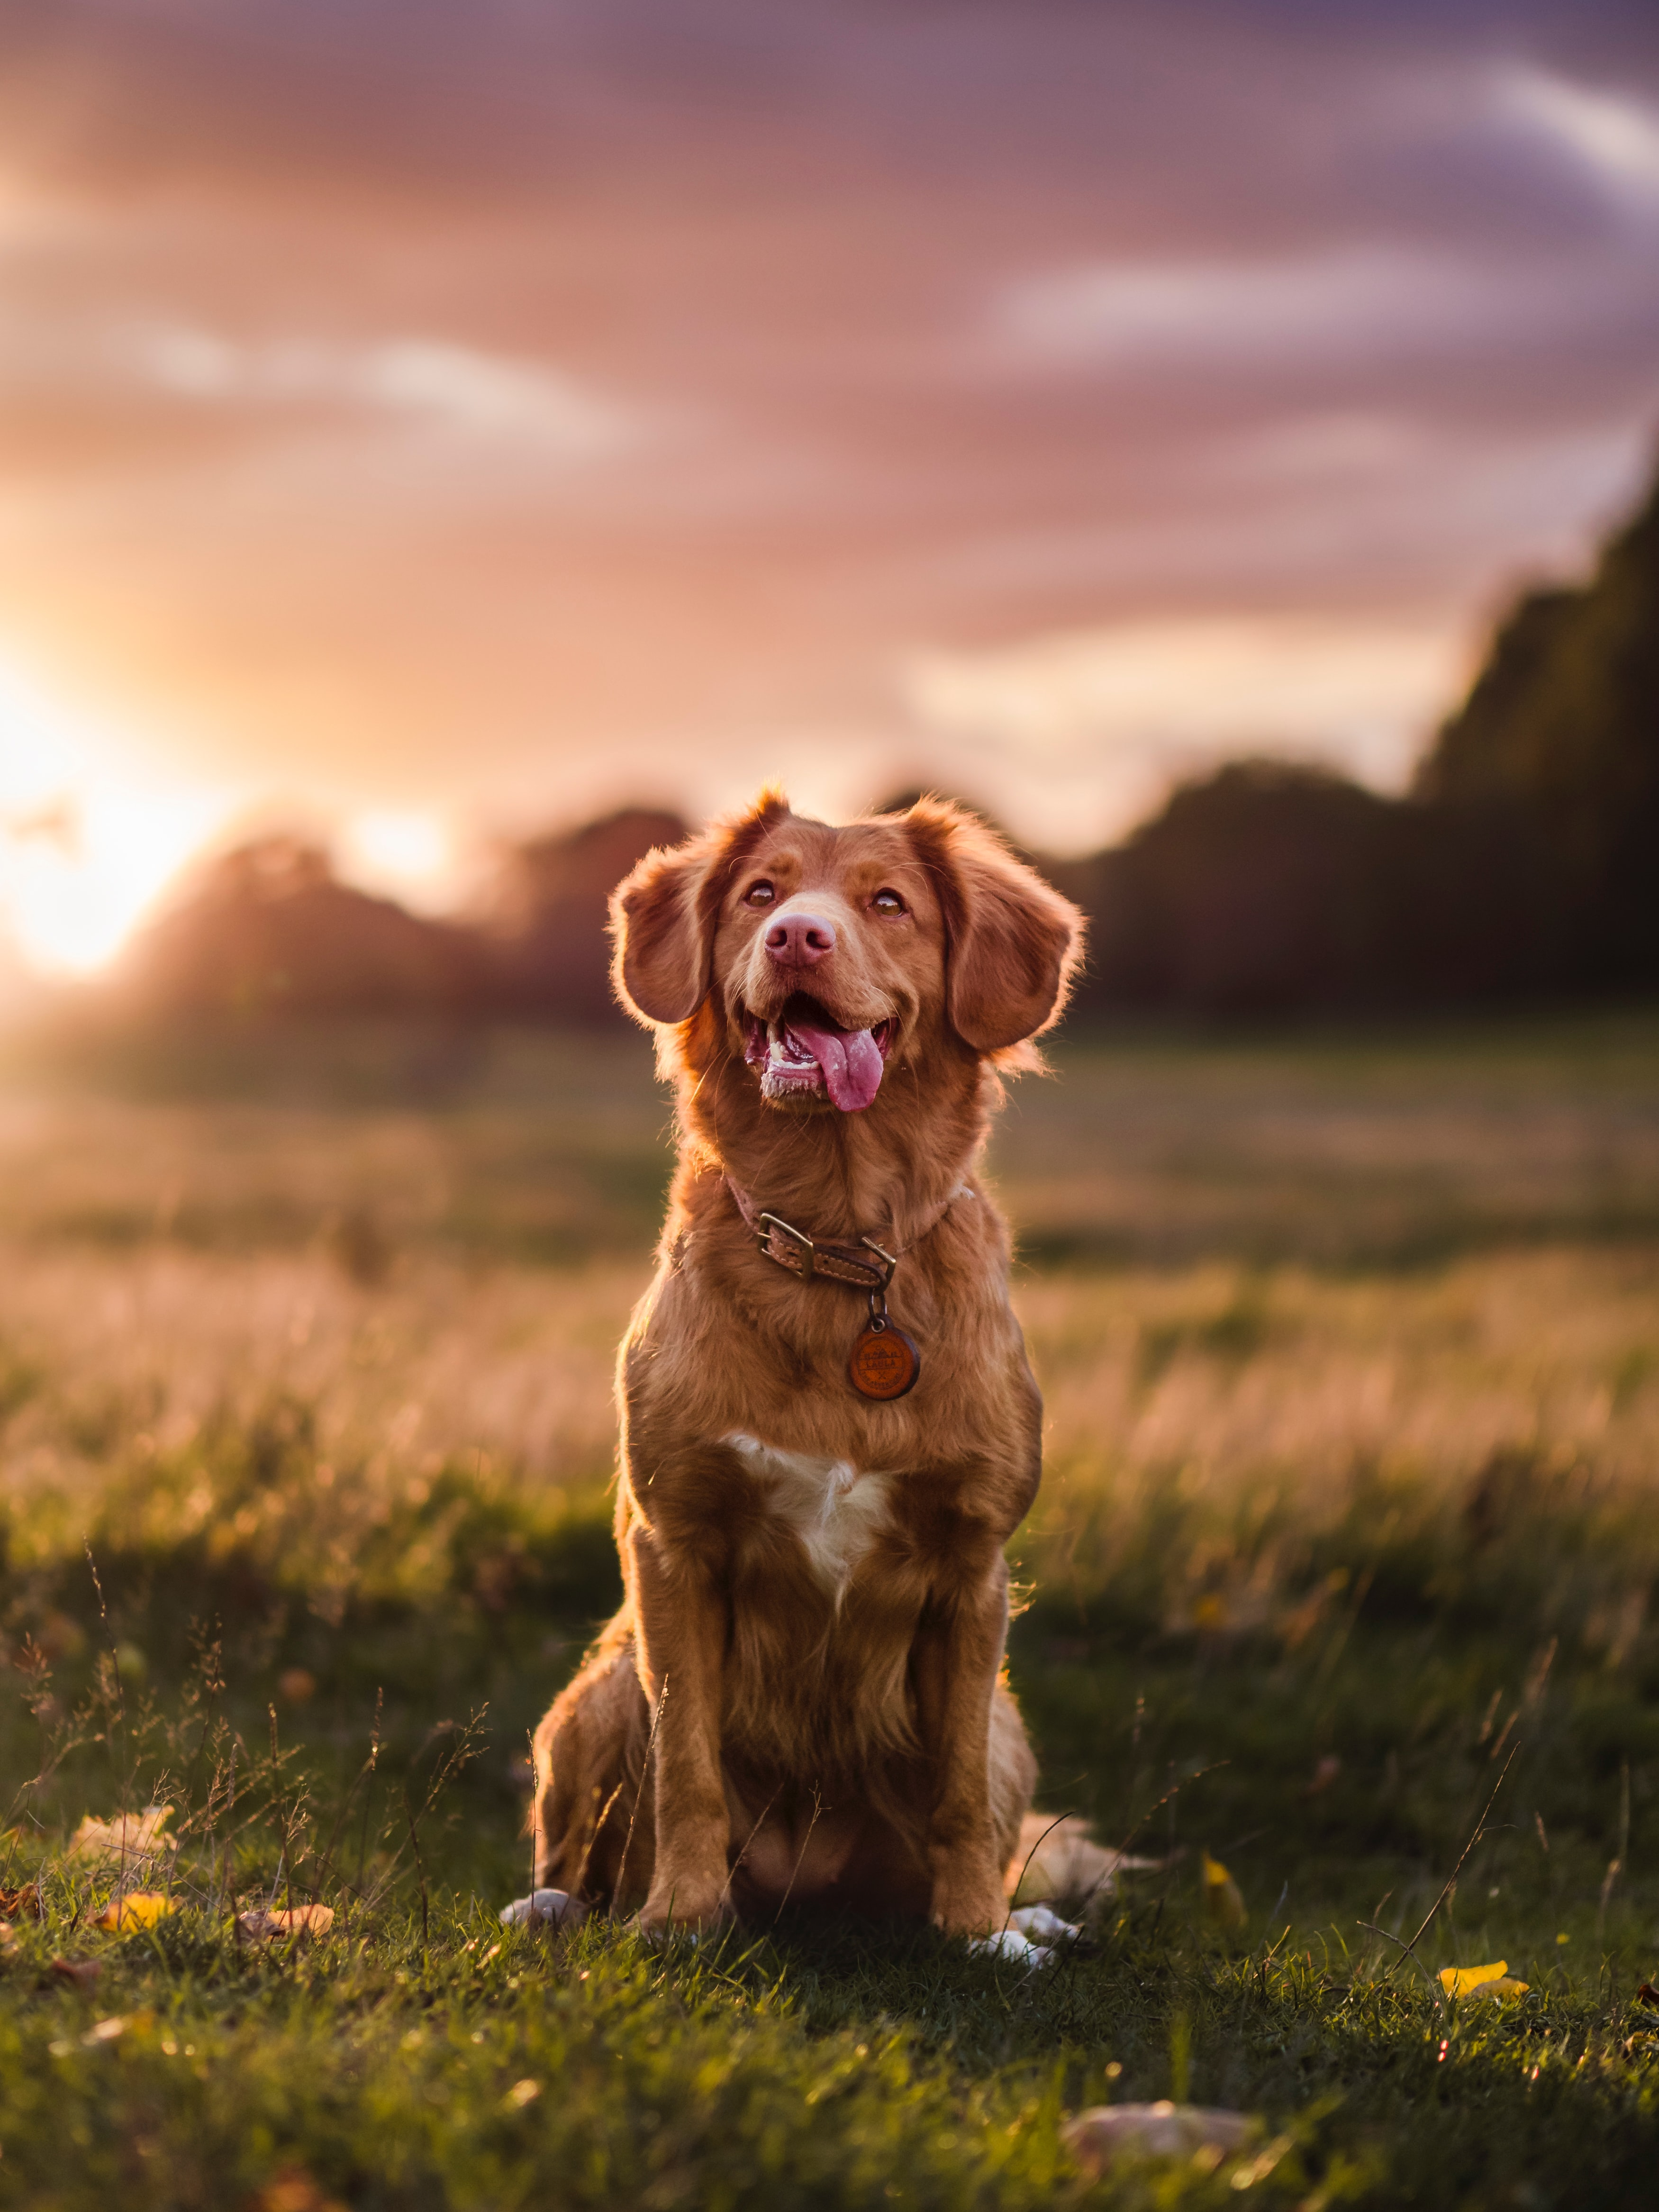 127516 Screensavers and Wallpapers Protruding Tongue for phone. Download Animals, Golden Retriever, Dog, Protruding Tongue, Tongue Stuck Out, Pet, Sight, Opinion pictures for free